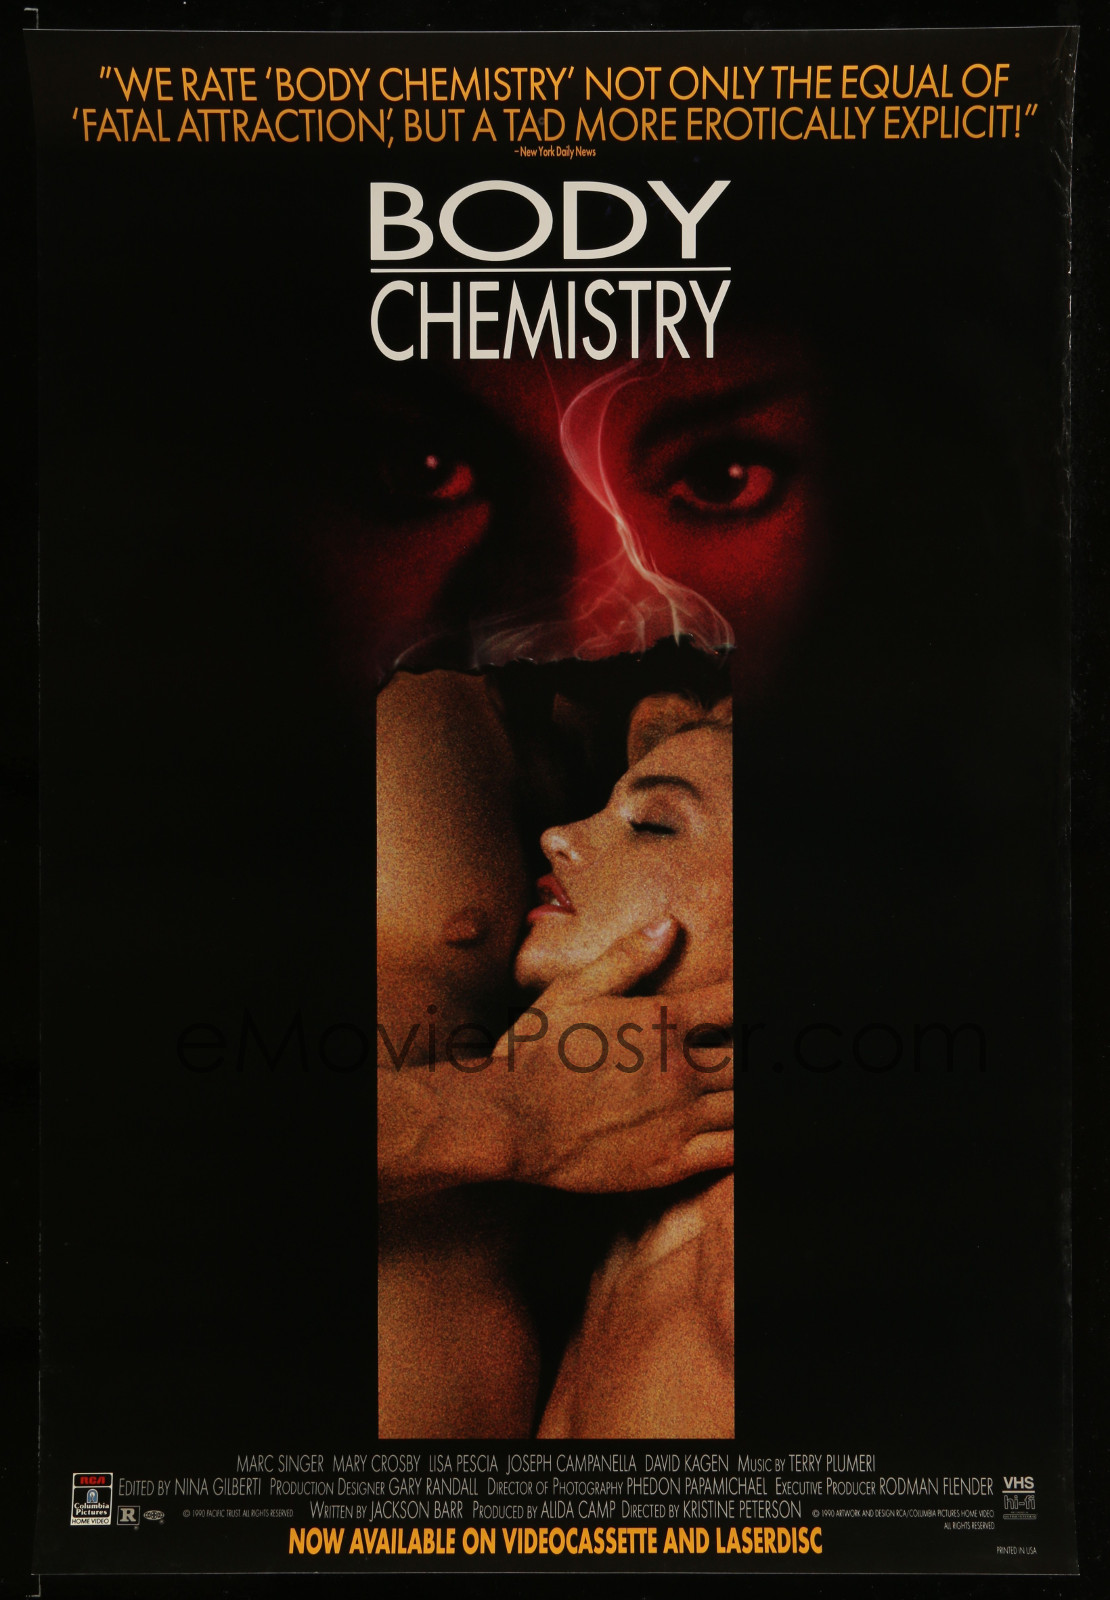 Body Chemistry 2A323 A Part Of A Lot 18 Unfolded Single-Sided Video Posters '90S A Variety Of Movie Images!